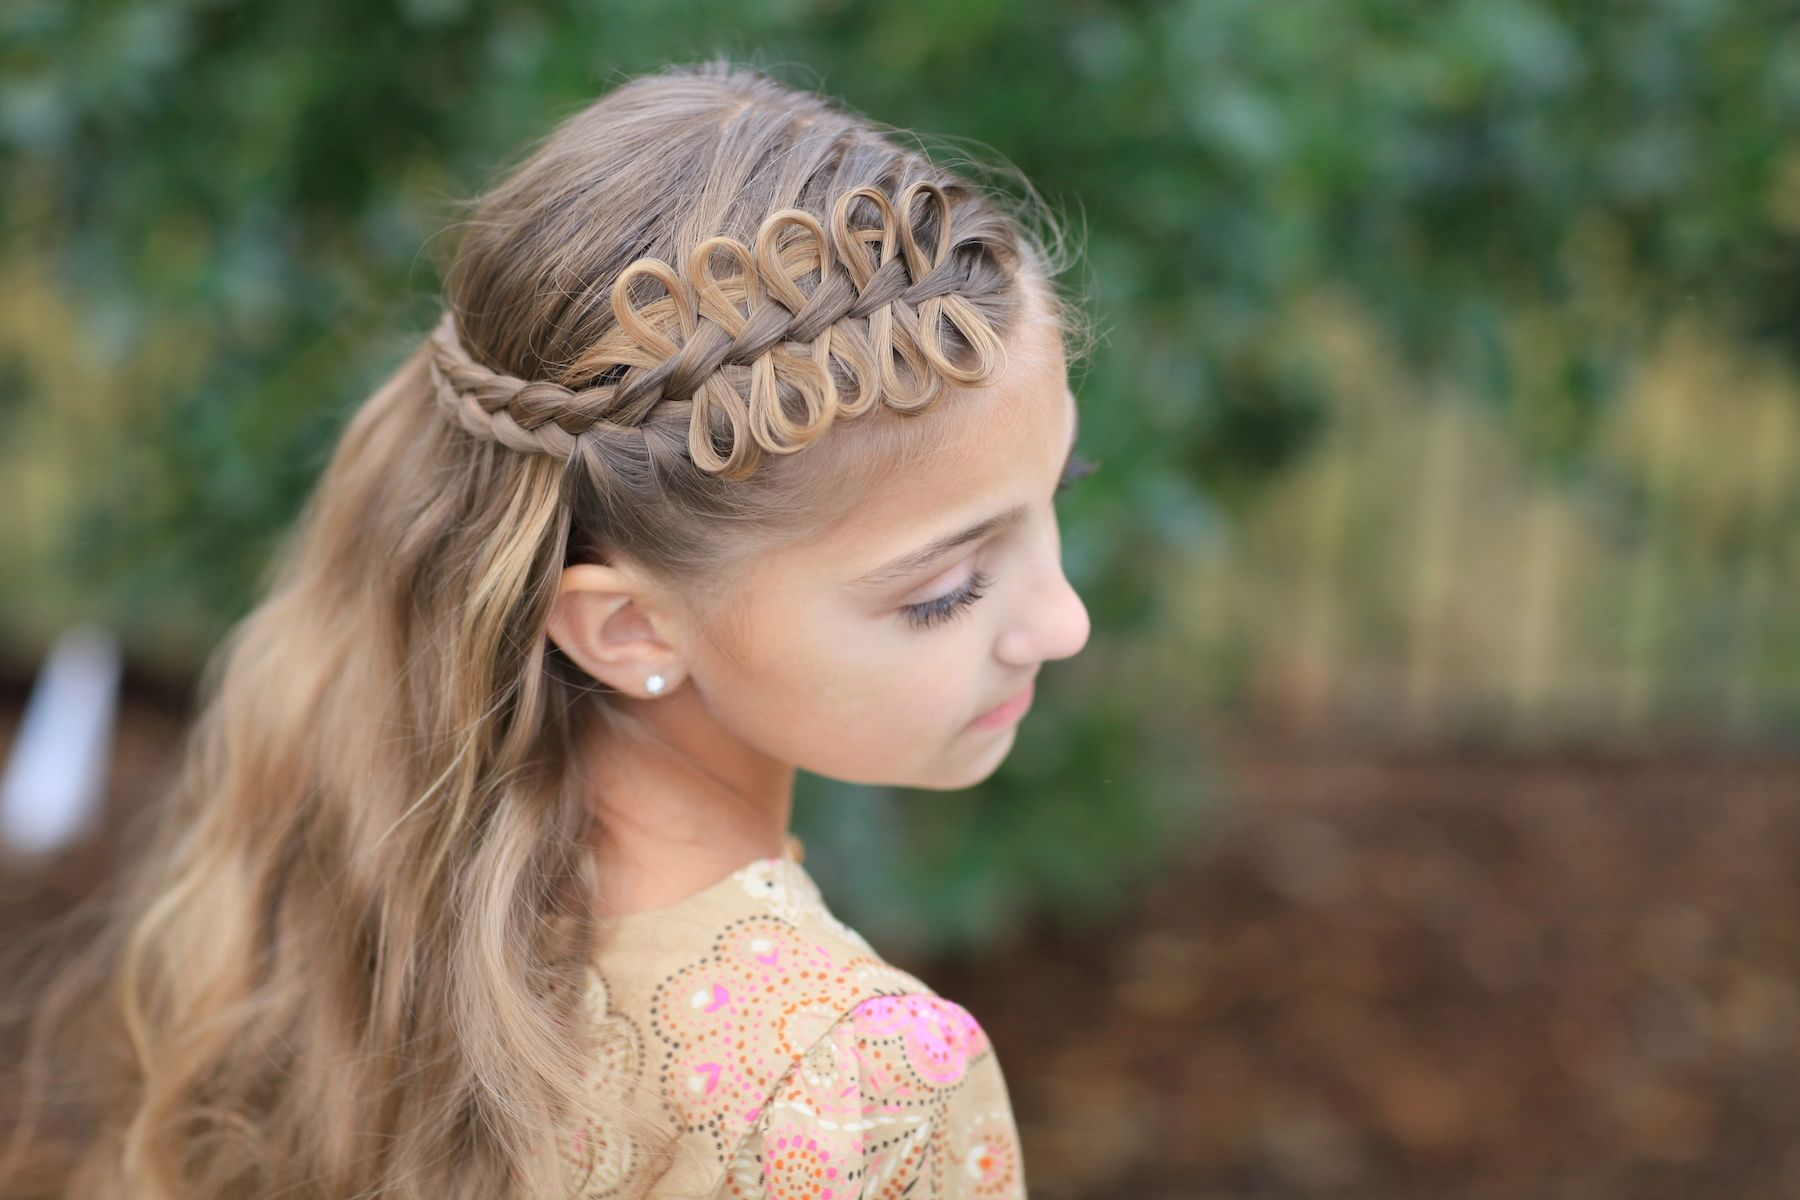 25 little girl hairstylesyou can do yourself bow braid hair 25 little girl hairstylesyou can do yourself get out of your solutioingenieria Choice Image